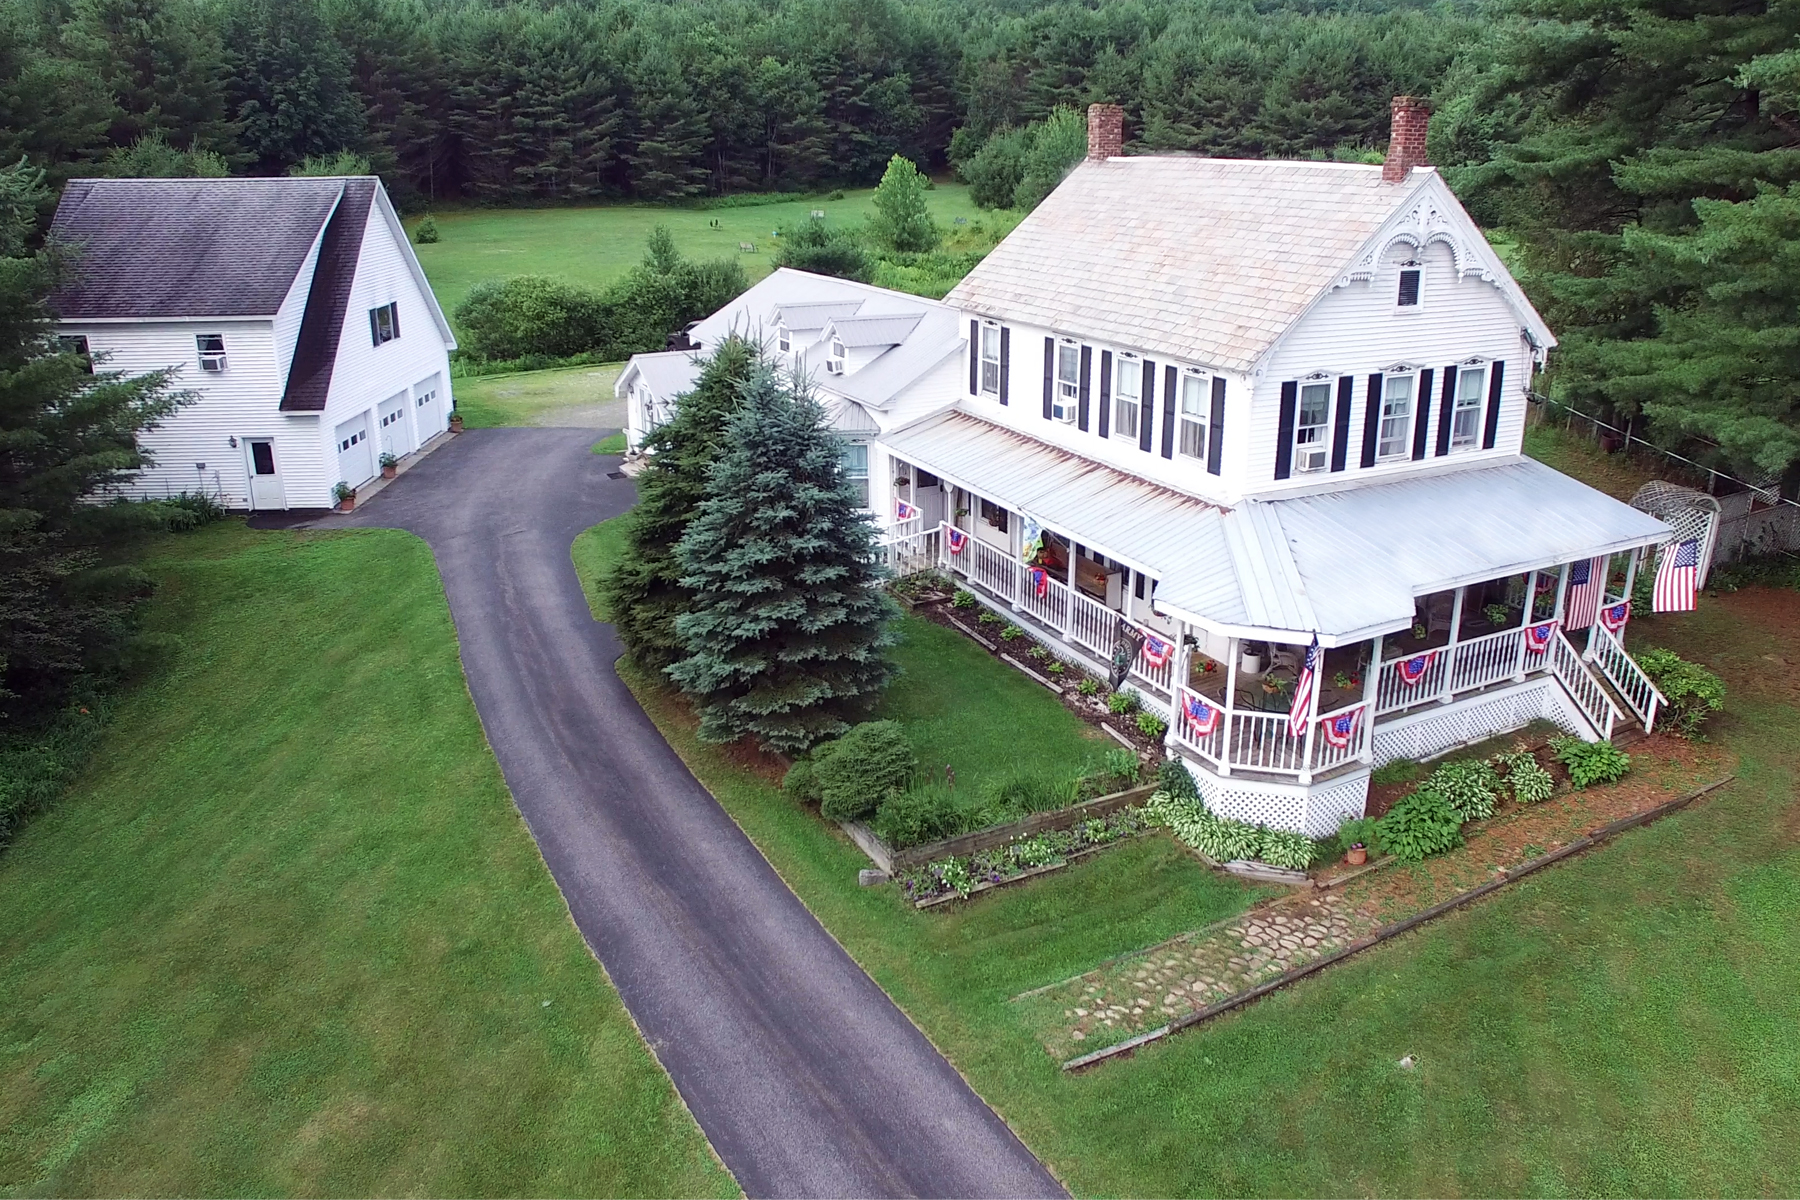 69 State Route 28, Warrensburg, NY 12885